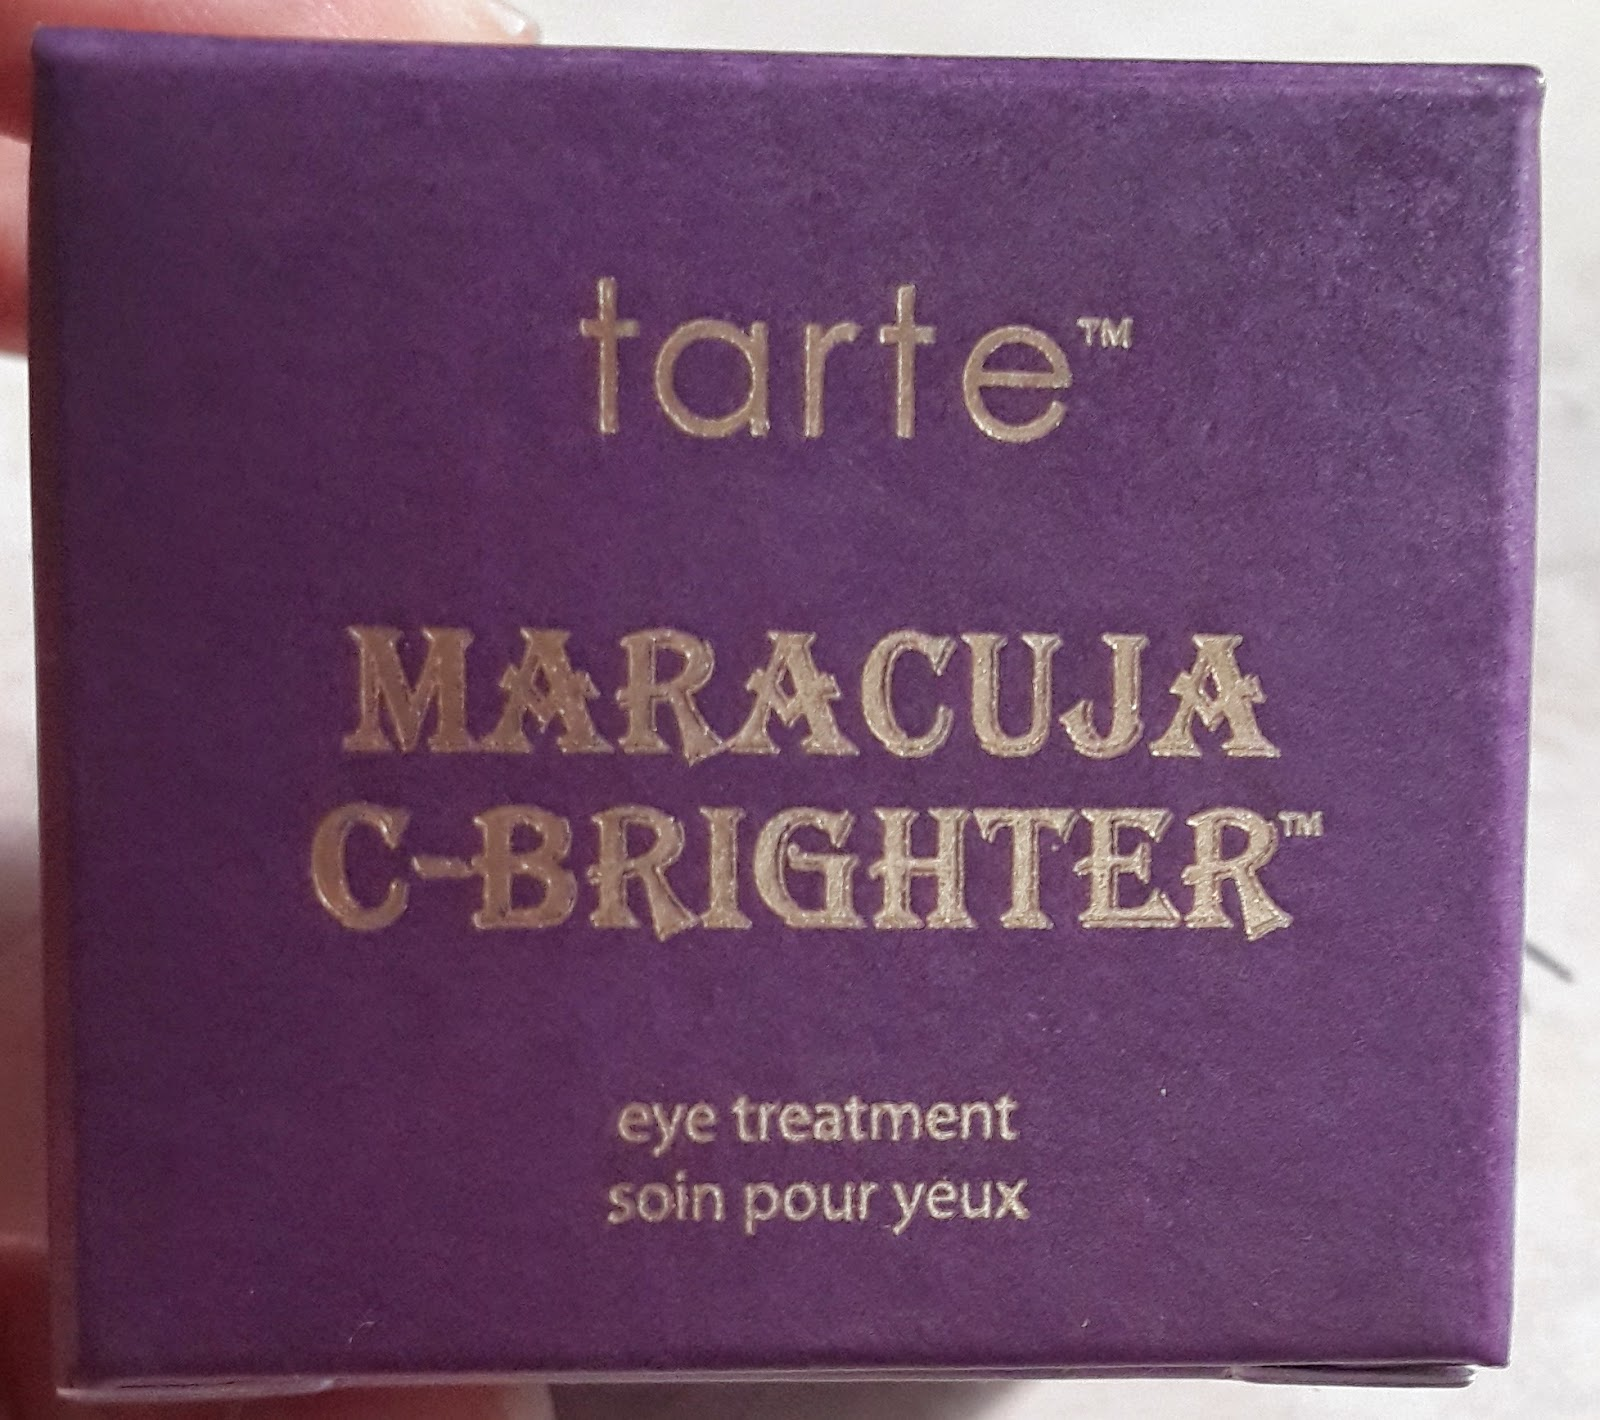 Tarte Maracuja C-Brighter Eye Treatment Review